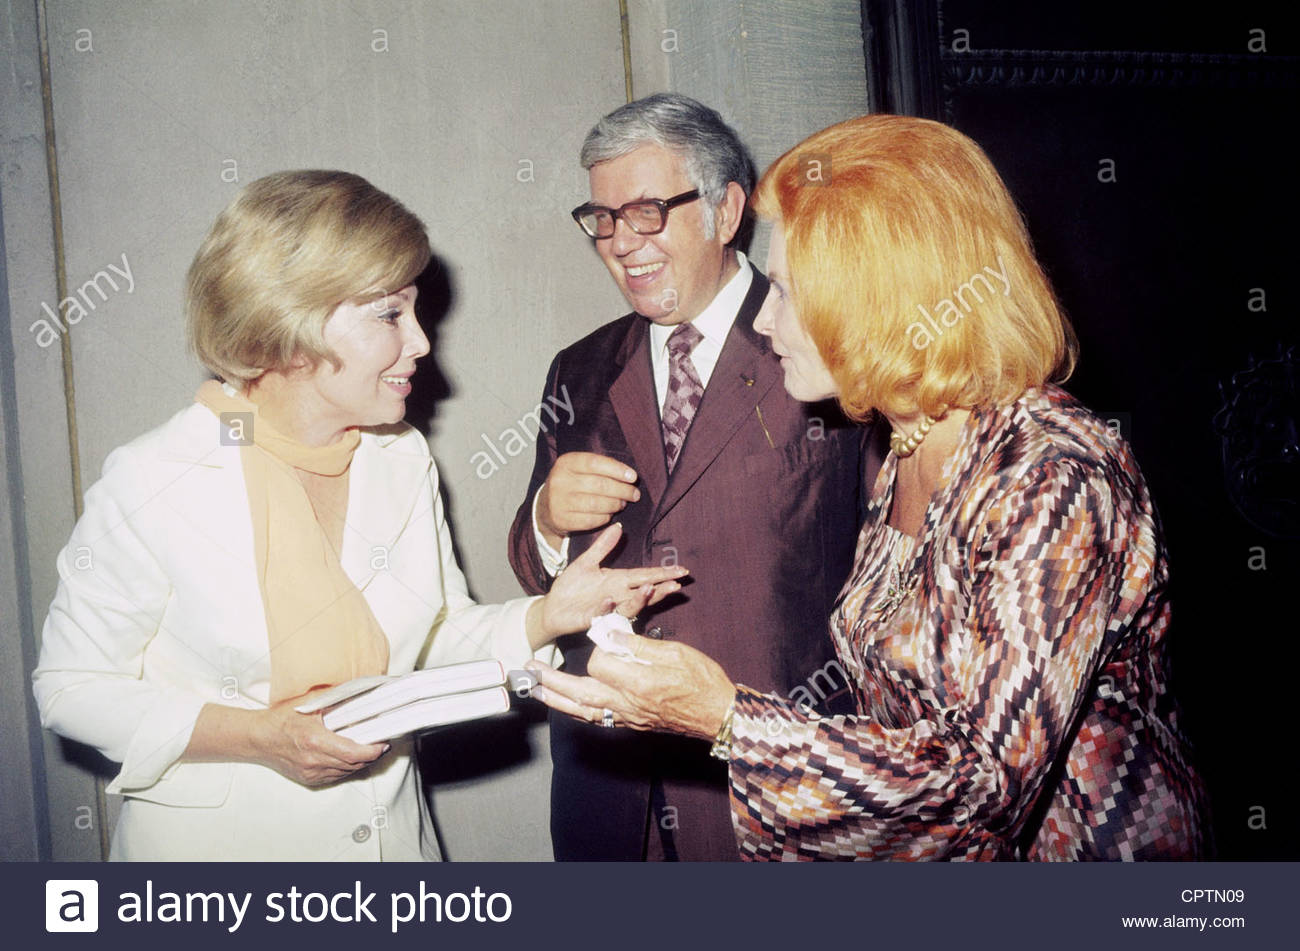 Kindler, Helmut, 3.12.1912 - 15.9.2008, German publisher, with wife Nina and Anneliese, Rothenberger during introduction - Stock Image